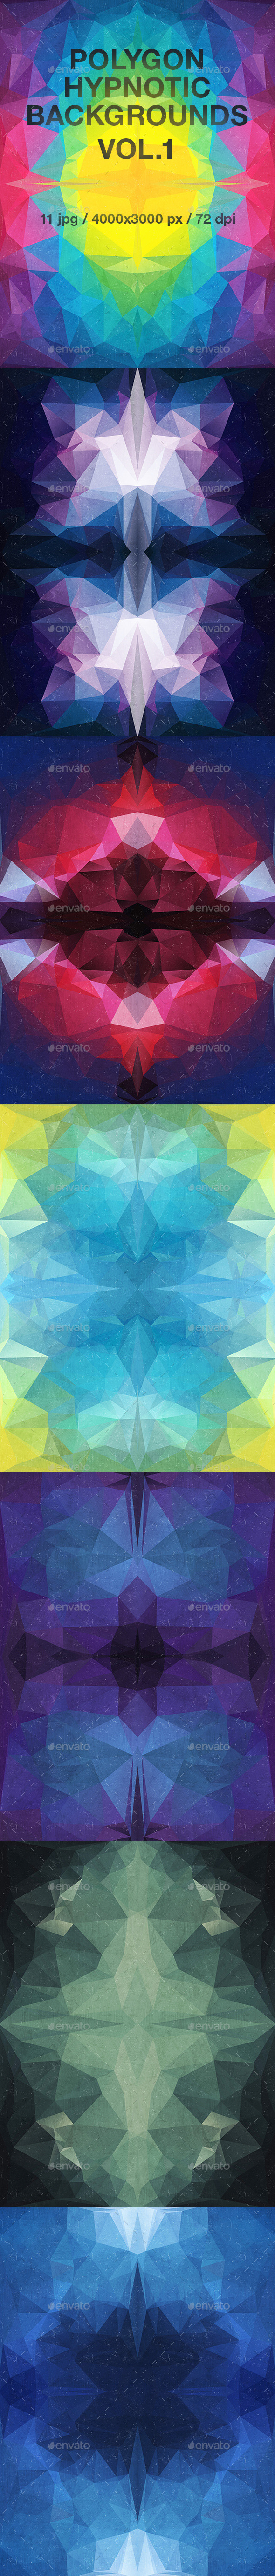 Polygon Hypnotic Backgrounds Vol.1 - Abstract Backgrounds